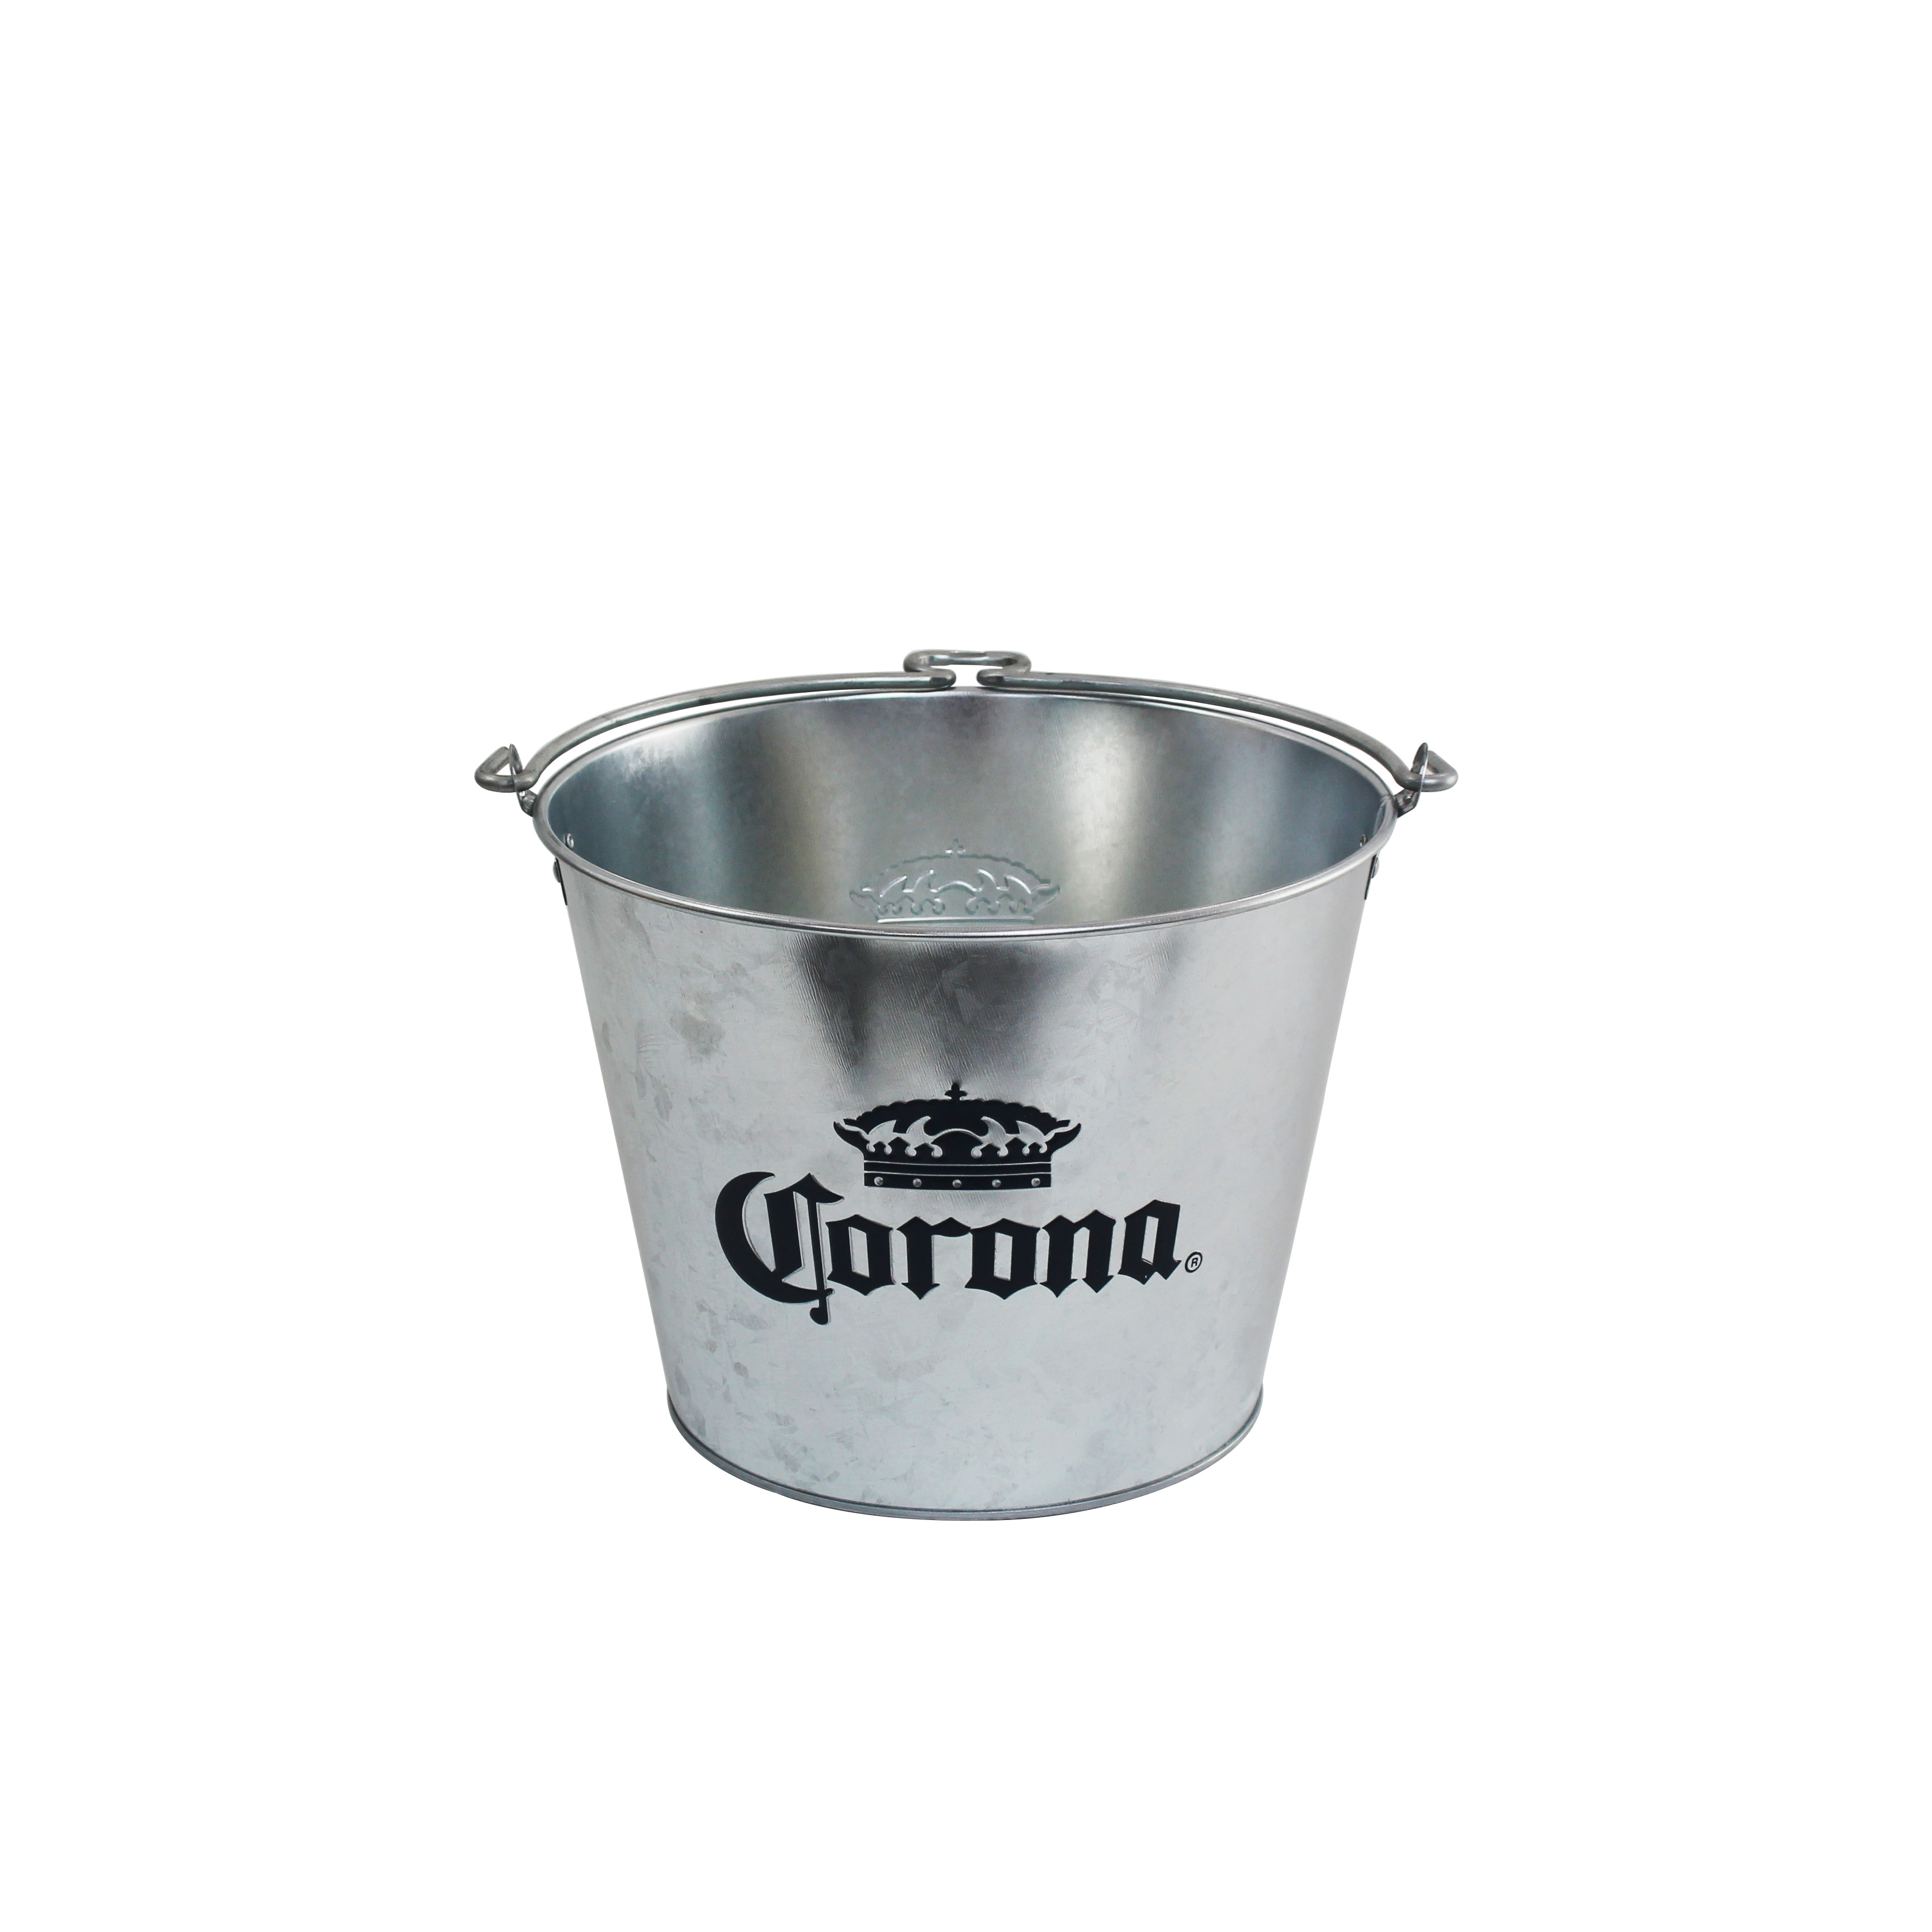 Corona Galvanized Beer Bucket